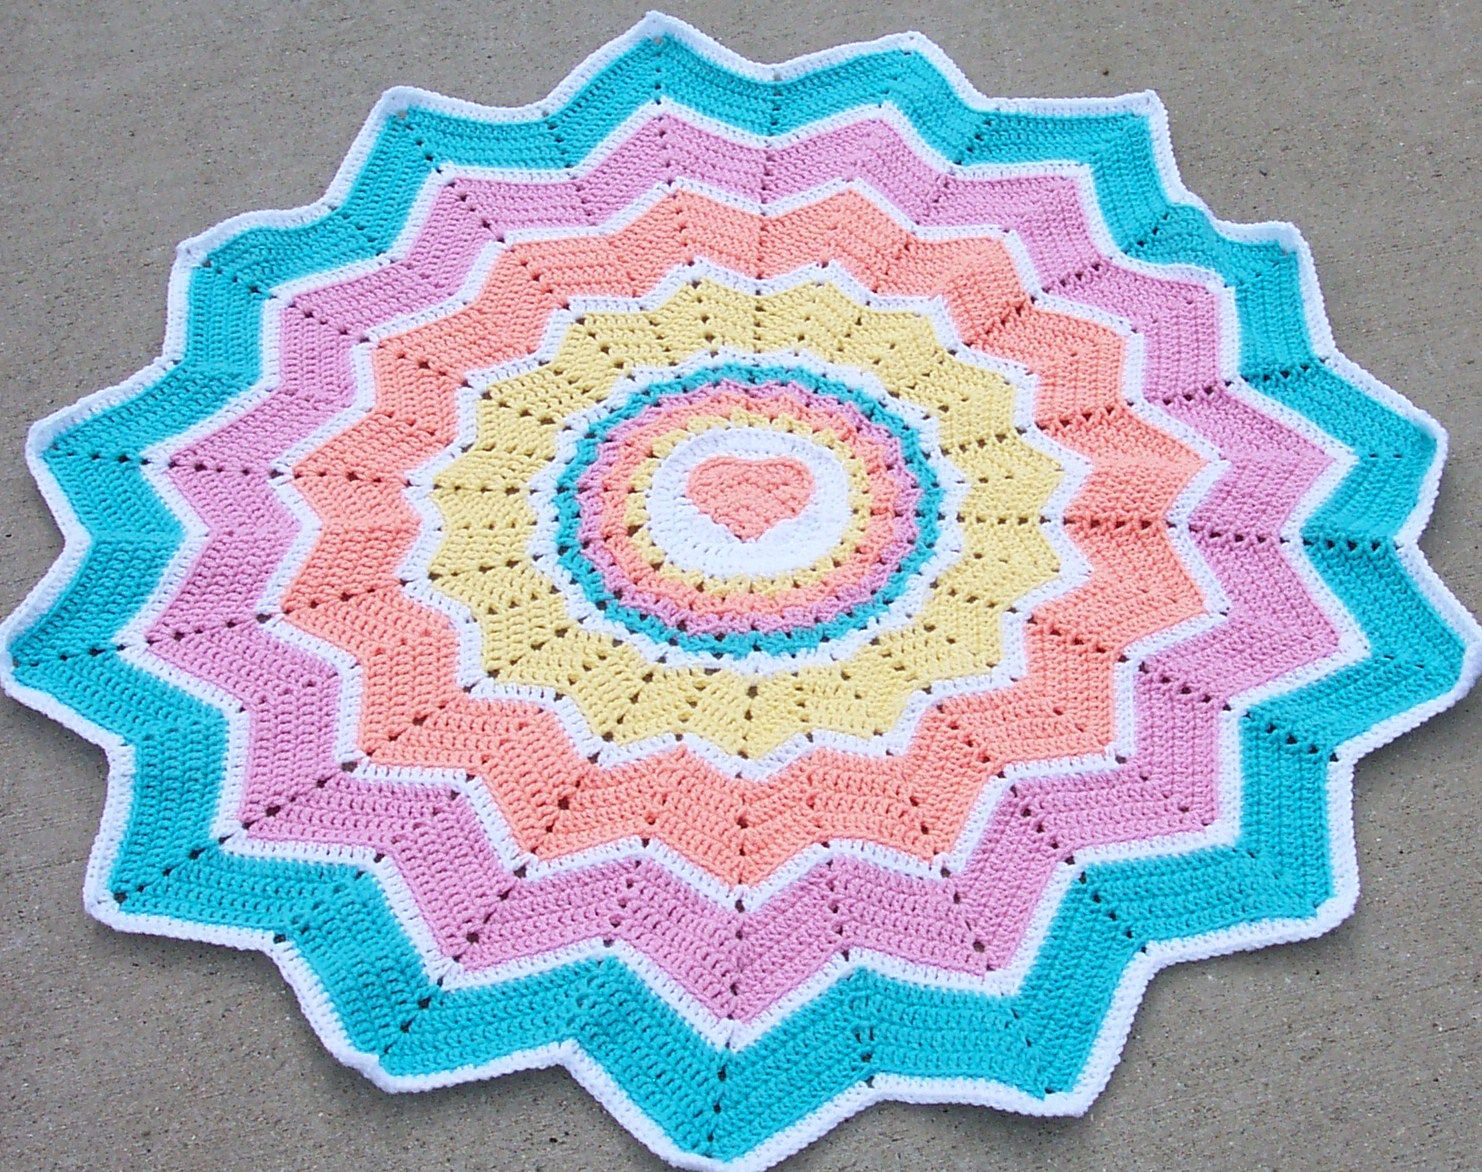 Rainbow heart round ripple 15 points pattern by donna mason svara rainbow heart round ripple 15 points pattern by donna mason svara bankloansurffo Images